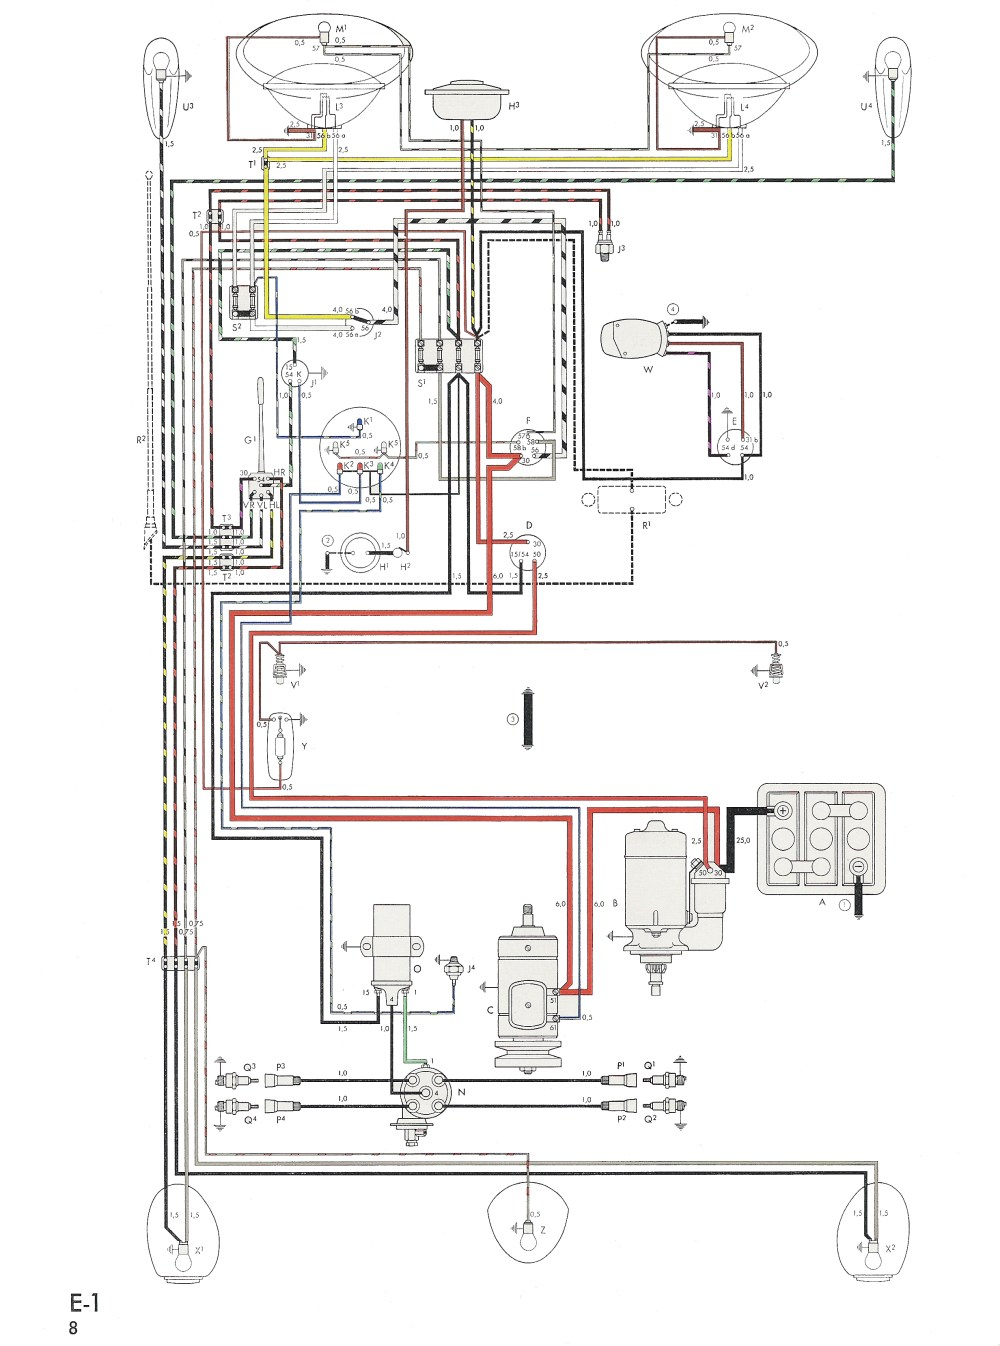 medium resolution of thesamba com type 1 wiring diagrams vw beetle wiring video vw beetle wiring